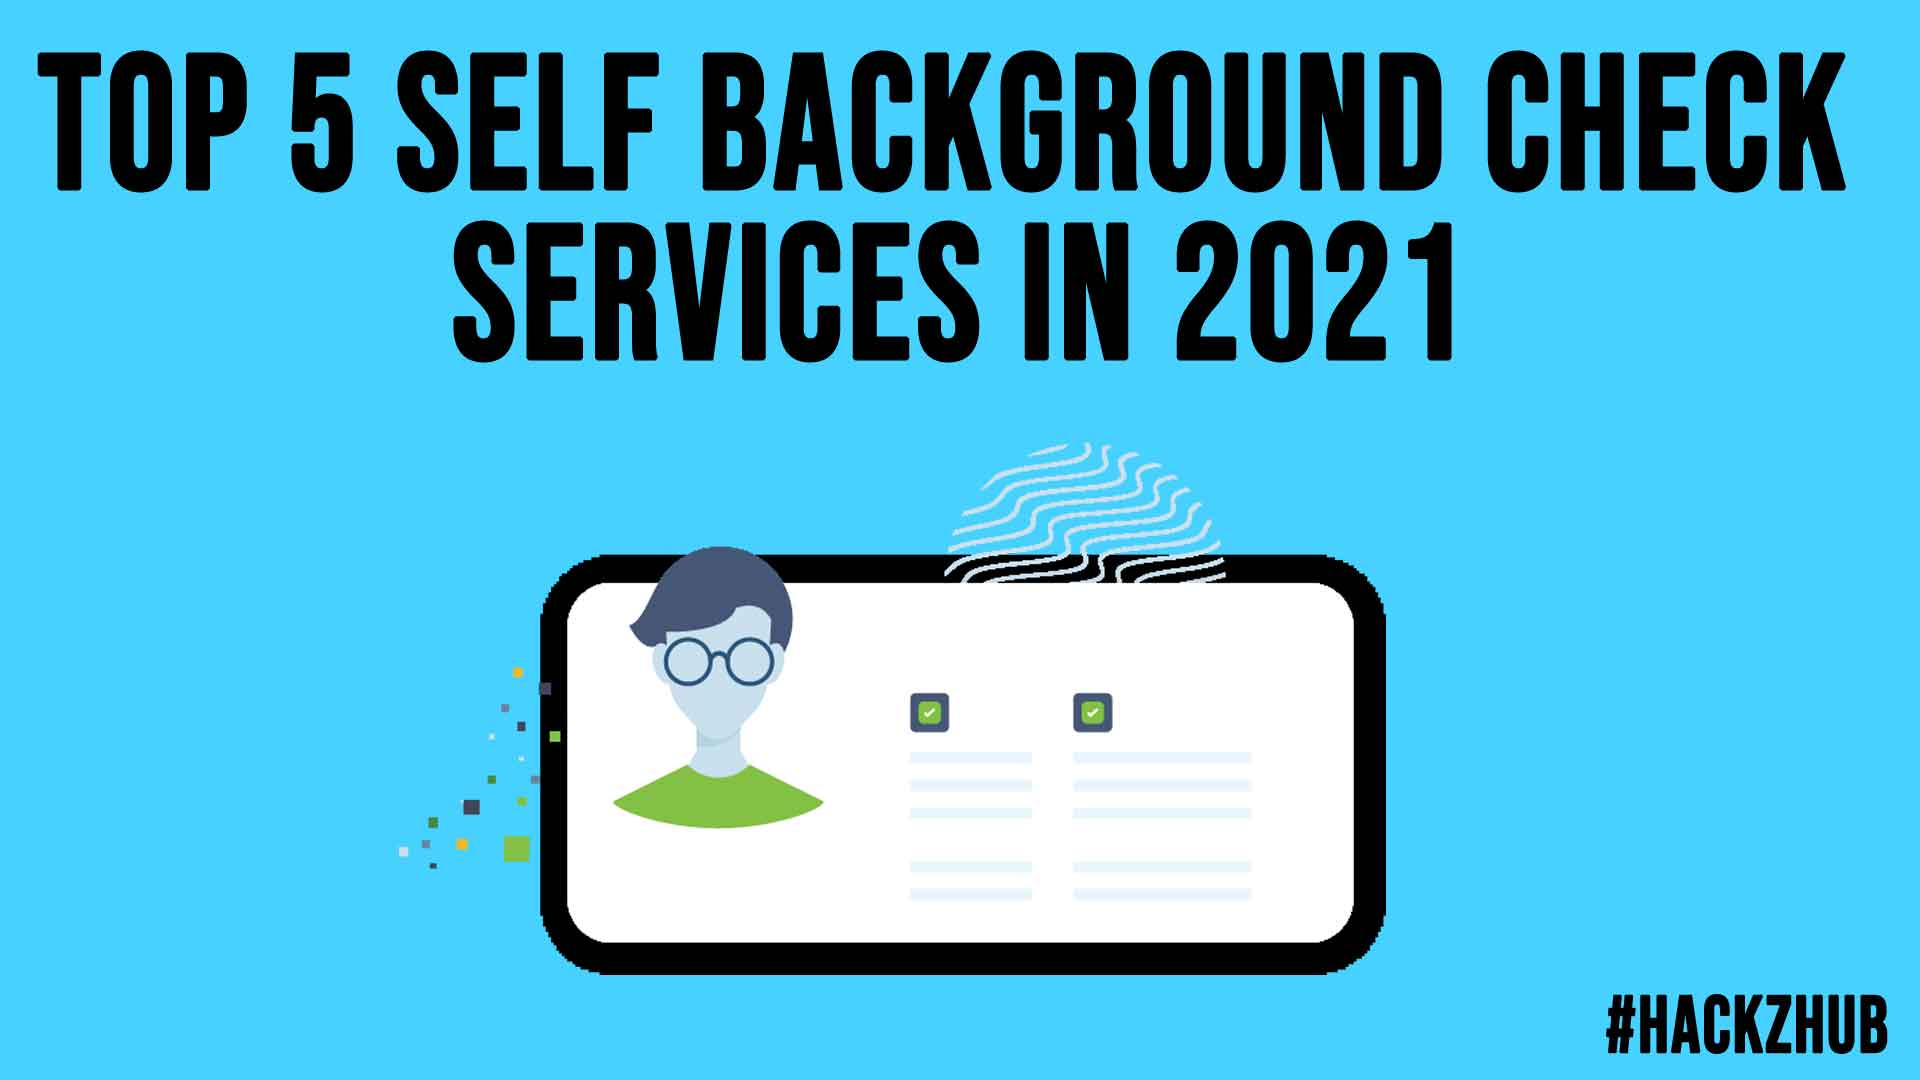 Top 5 Self Background Check Services in 2021